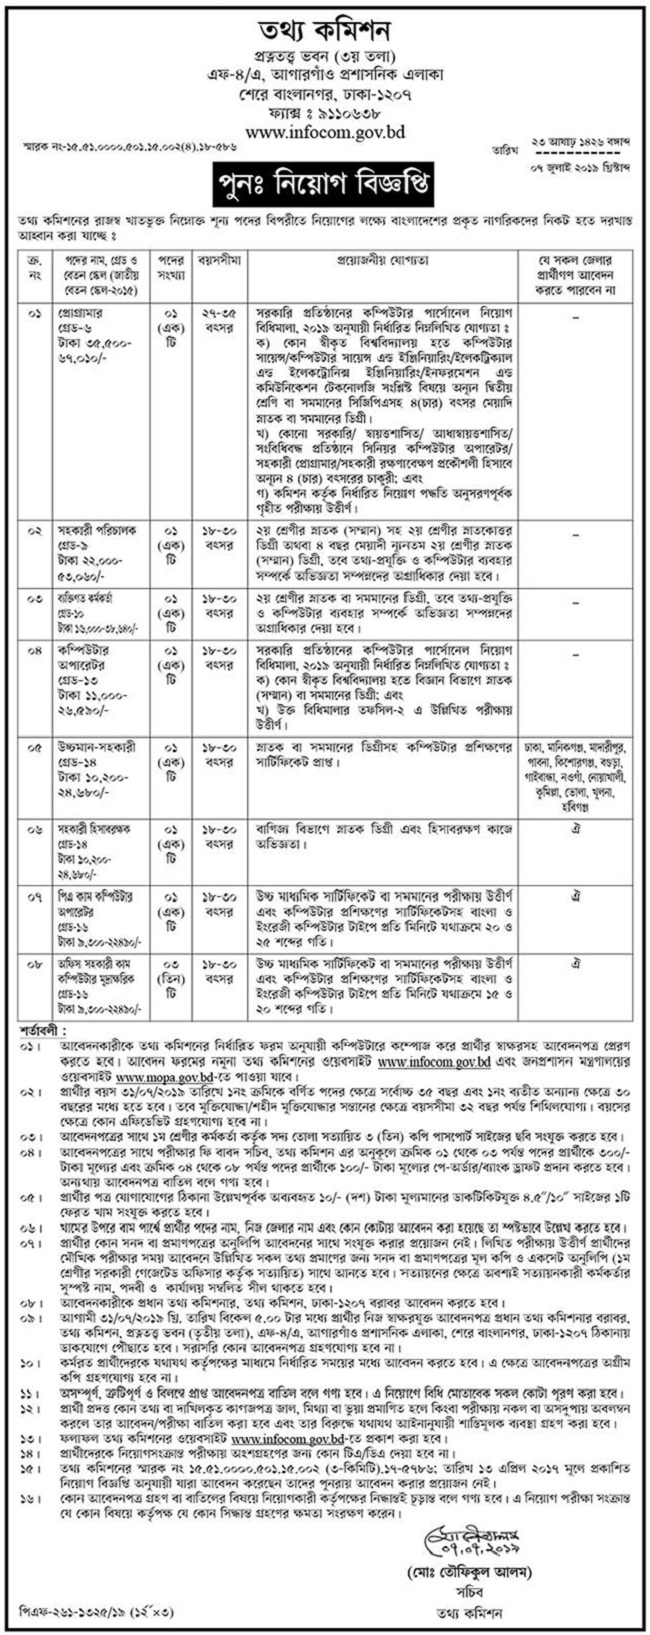 Information Commission Job Circular 2019